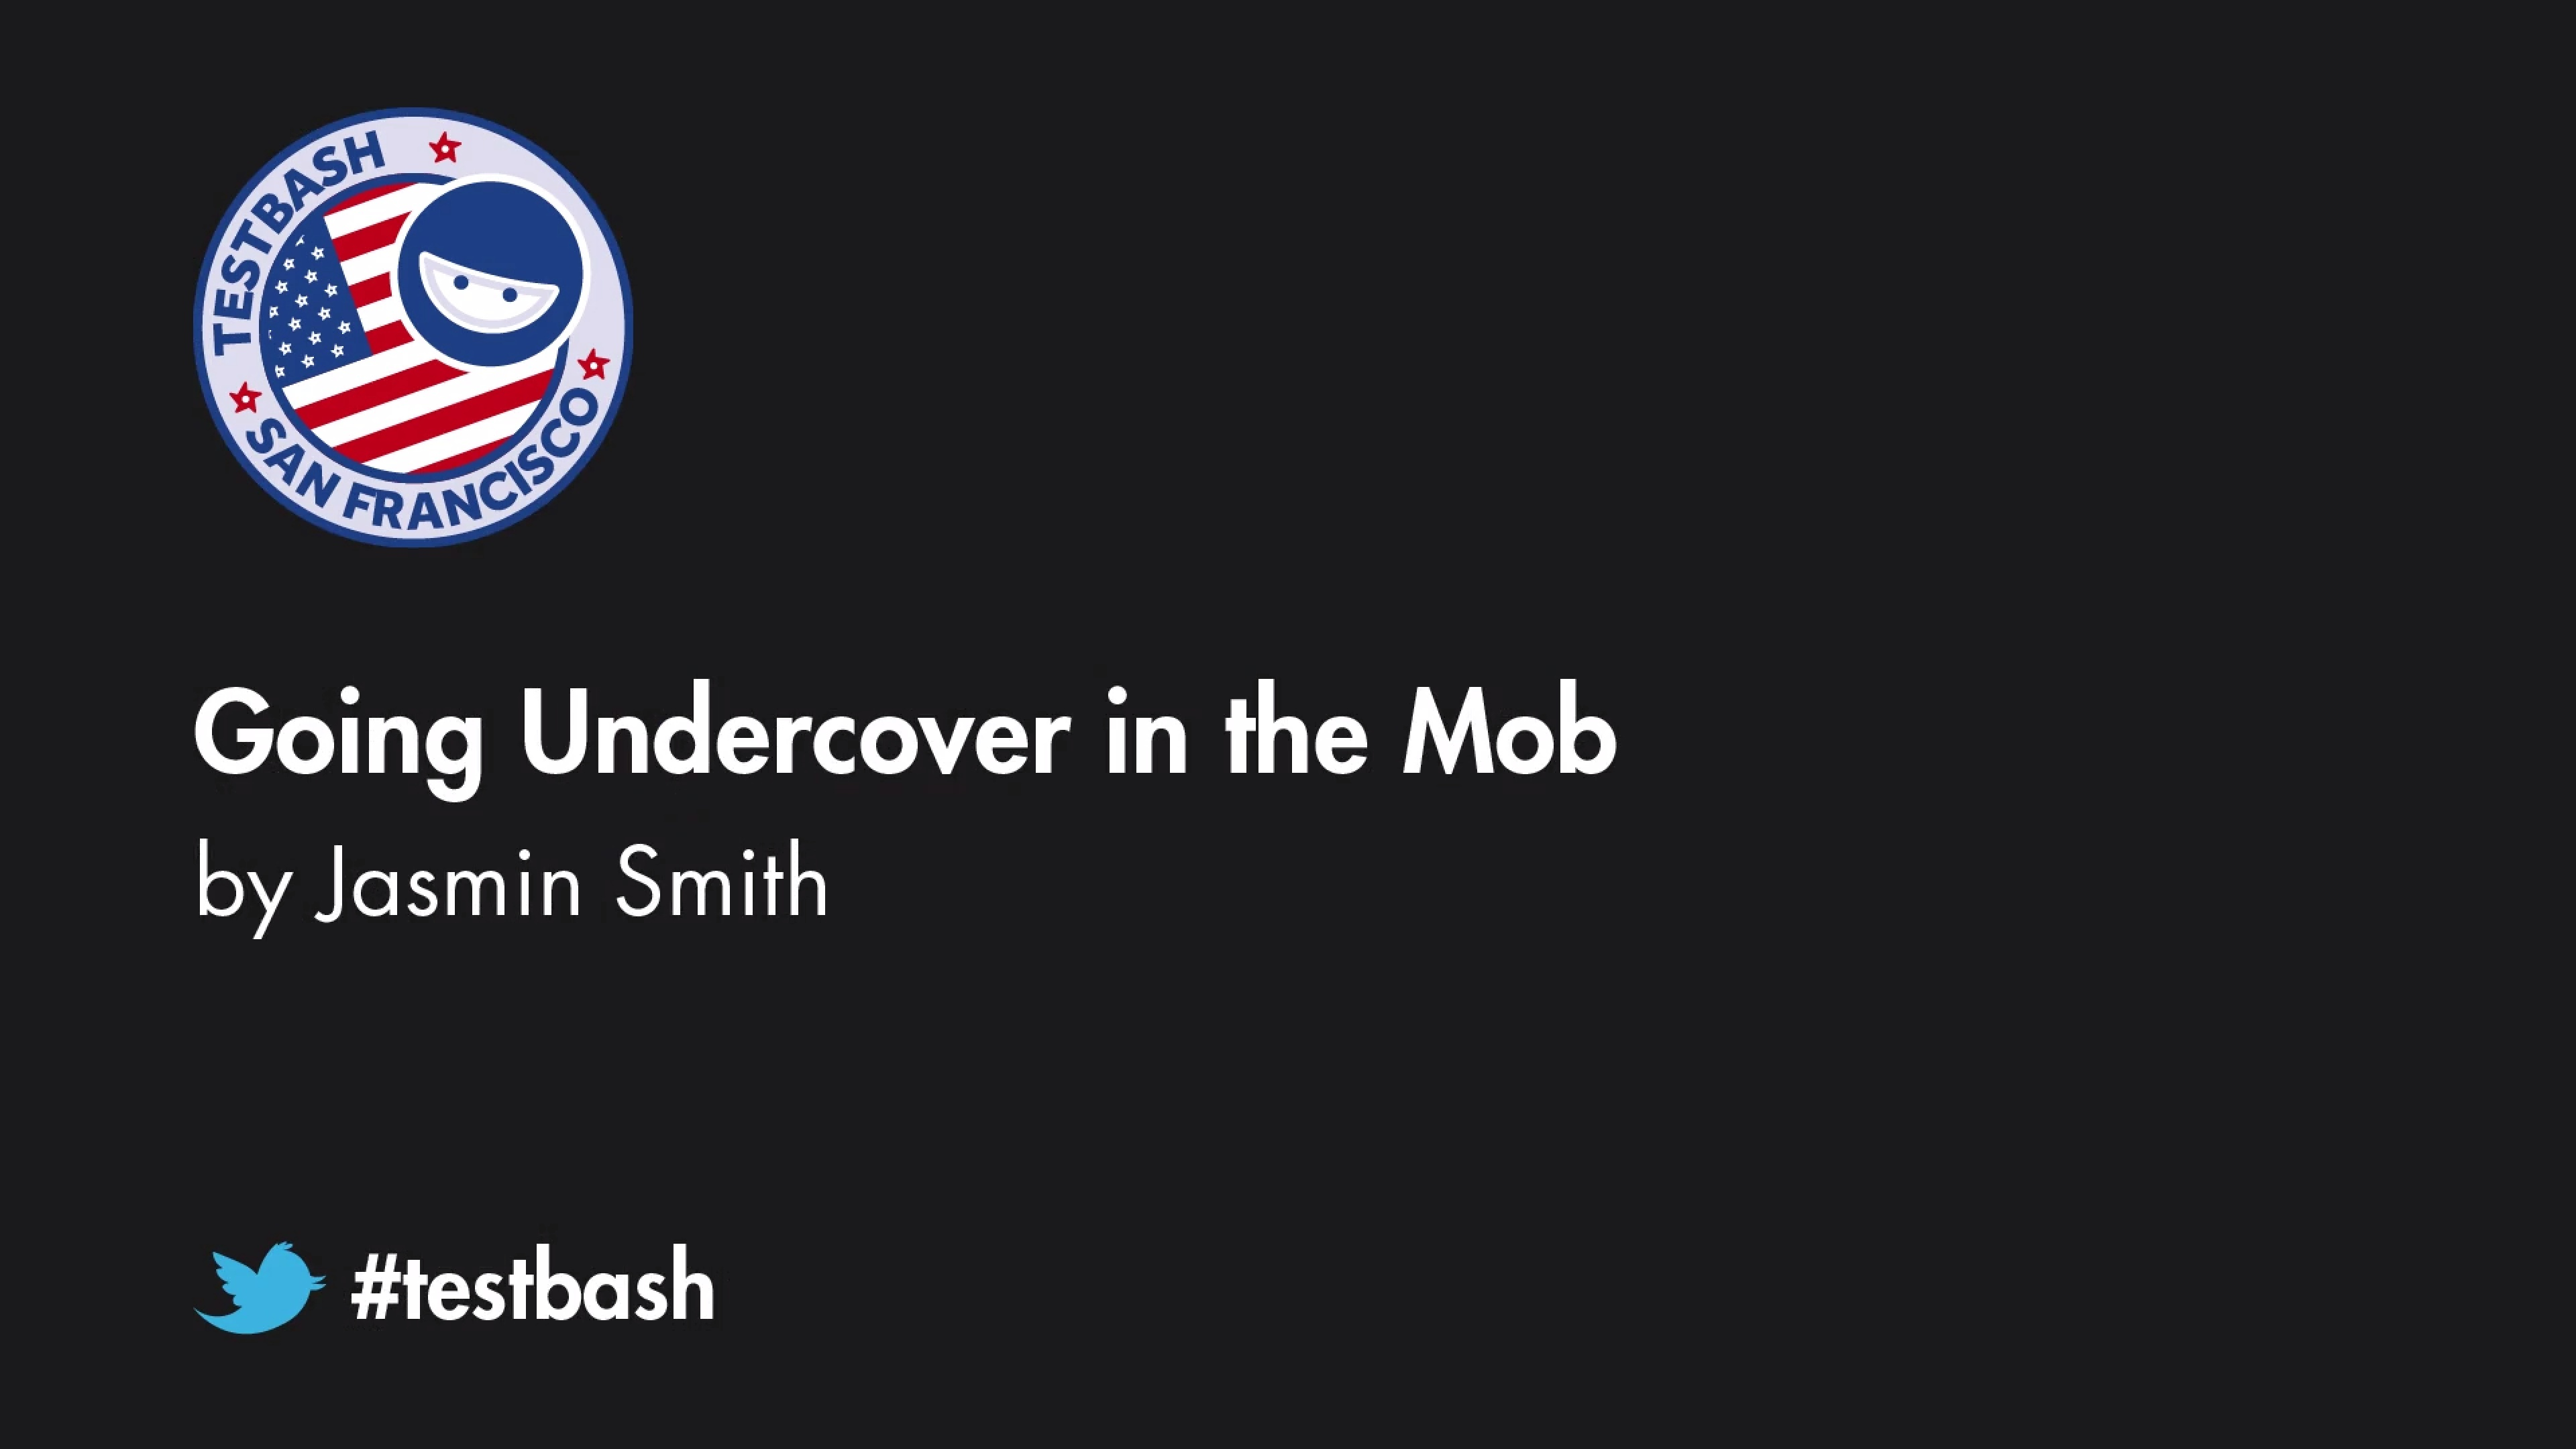 Going Undercover in the Mob - Jasmin Smith